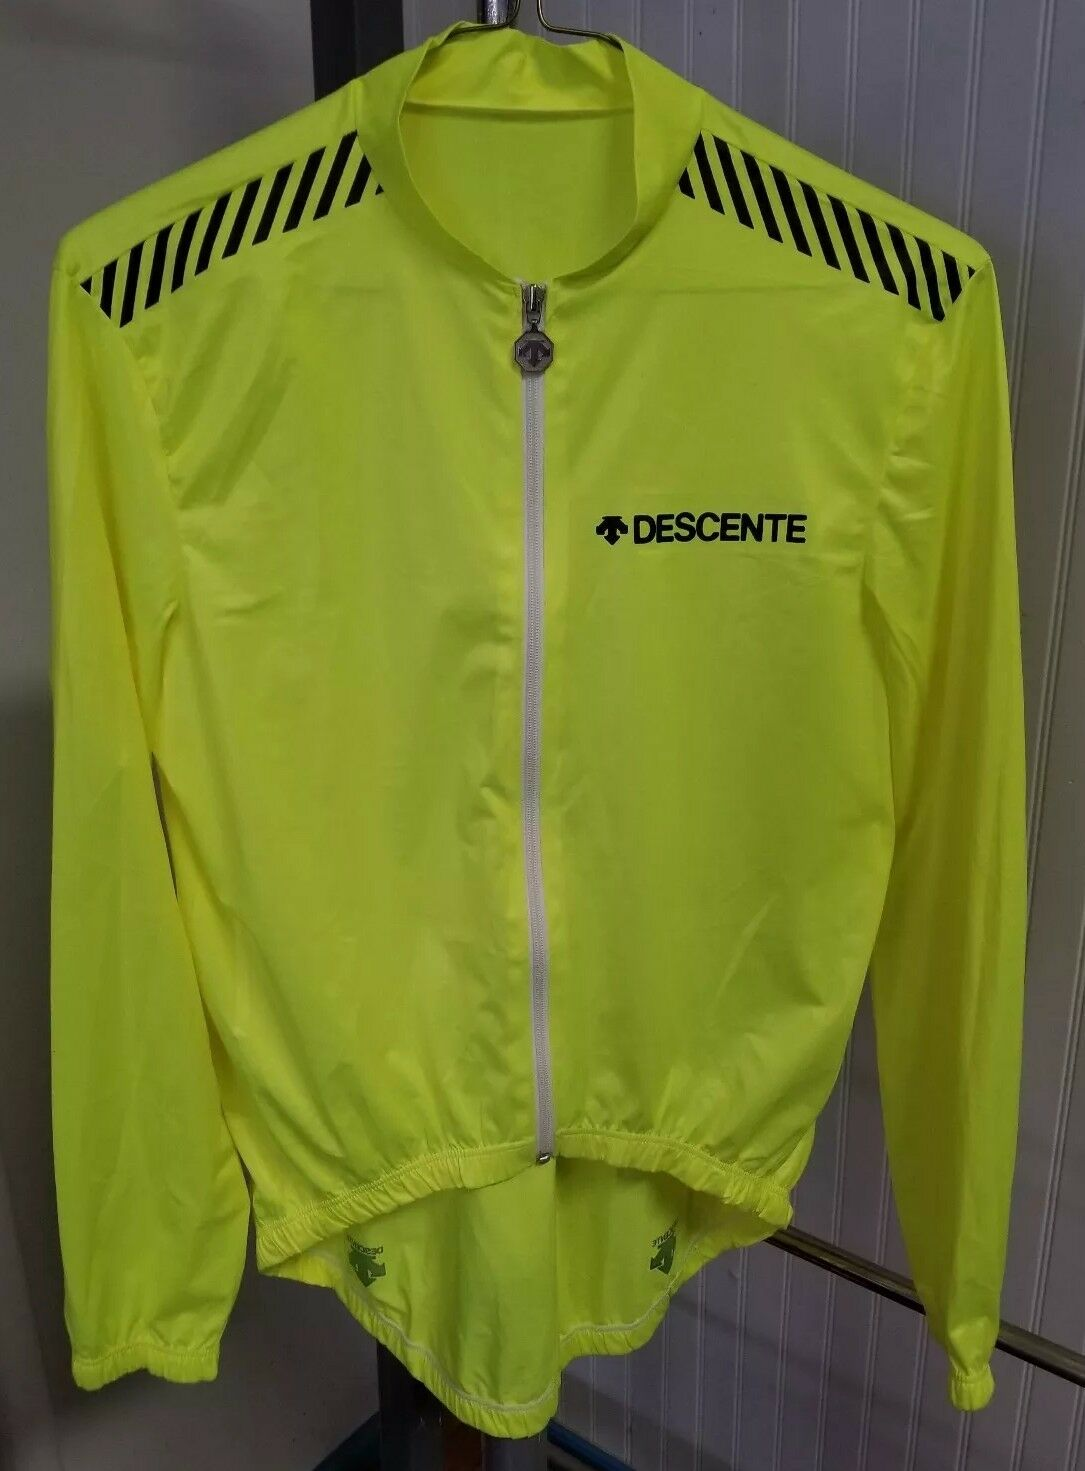 Descente Neon Gelb Racing Cycling Jacket Jersey Top Größe Small Style Hans Hess